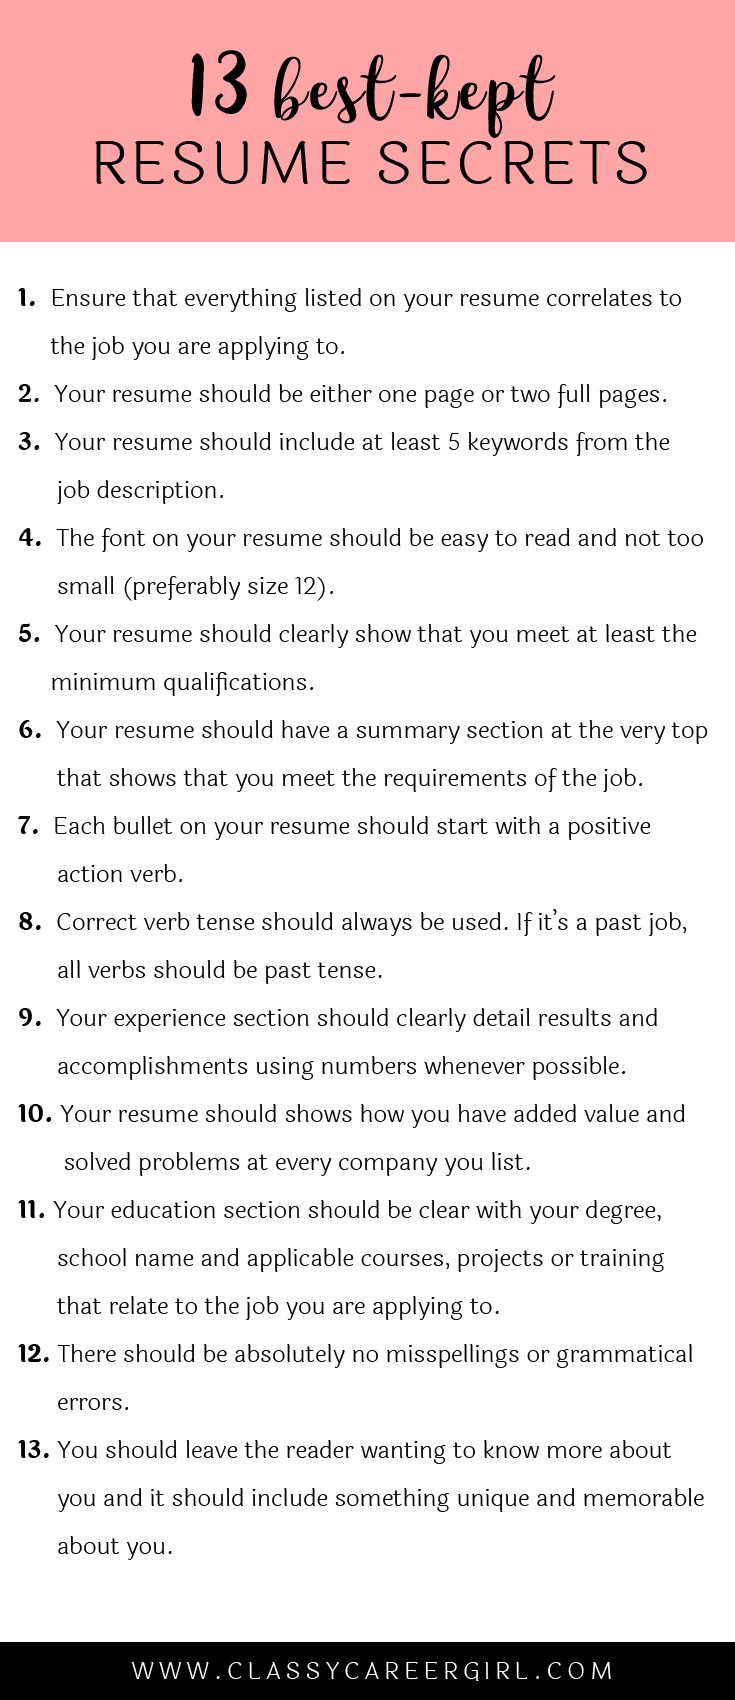 Opposenewapstandardsus  Scenic  Ideas About Resume On Pinterest  Cv Format Resume Cv And  With Heavenly Some Hiring Managers Will Toss Your Resume Out If You Dont Know These  With Easy On The Eye Sample Cna Resume Also Resume Building Tips In Addition Please Find My Resume Attached And Reference On Resume As Well As Radiologic Technologist Resume Additionally Infographic Resume Template From Pinterestcom With Opposenewapstandardsus  Heavenly  Ideas About Resume On Pinterest  Cv Format Resume Cv And  With Easy On The Eye Some Hiring Managers Will Toss Your Resume Out If You Dont Know These  And Scenic Sample Cna Resume Also Resume Building Tips In Addition Please Find My Resume Attached From Pinterestcom